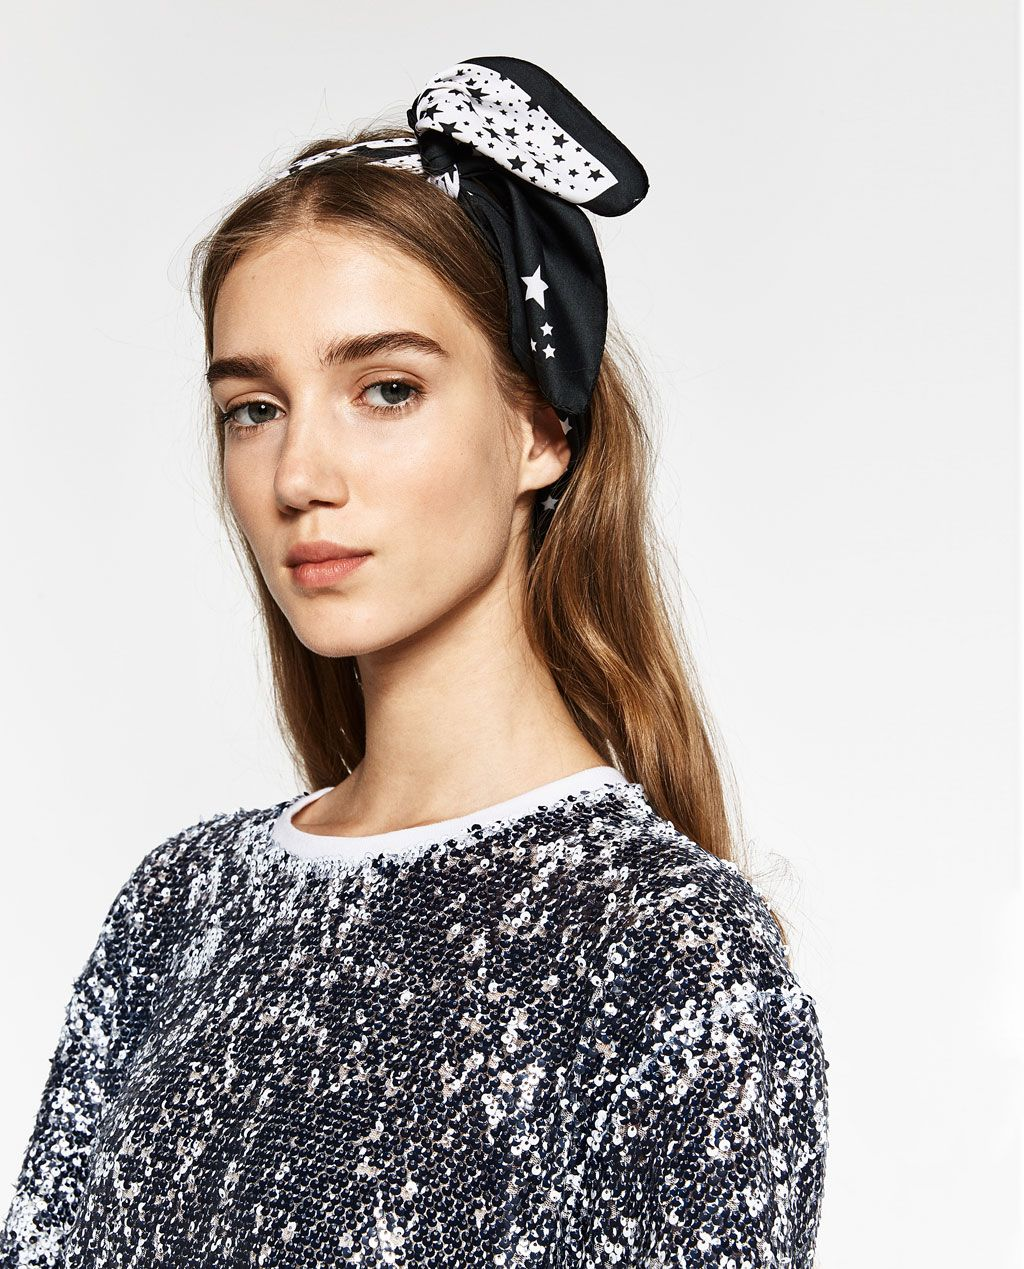 Zara baby hair accessories - Complete Your Look With The Latest Trends For Women S Accessories At Zara Online Find Hats Headbands Jewelry Sunglasses Belts And Tights For Women